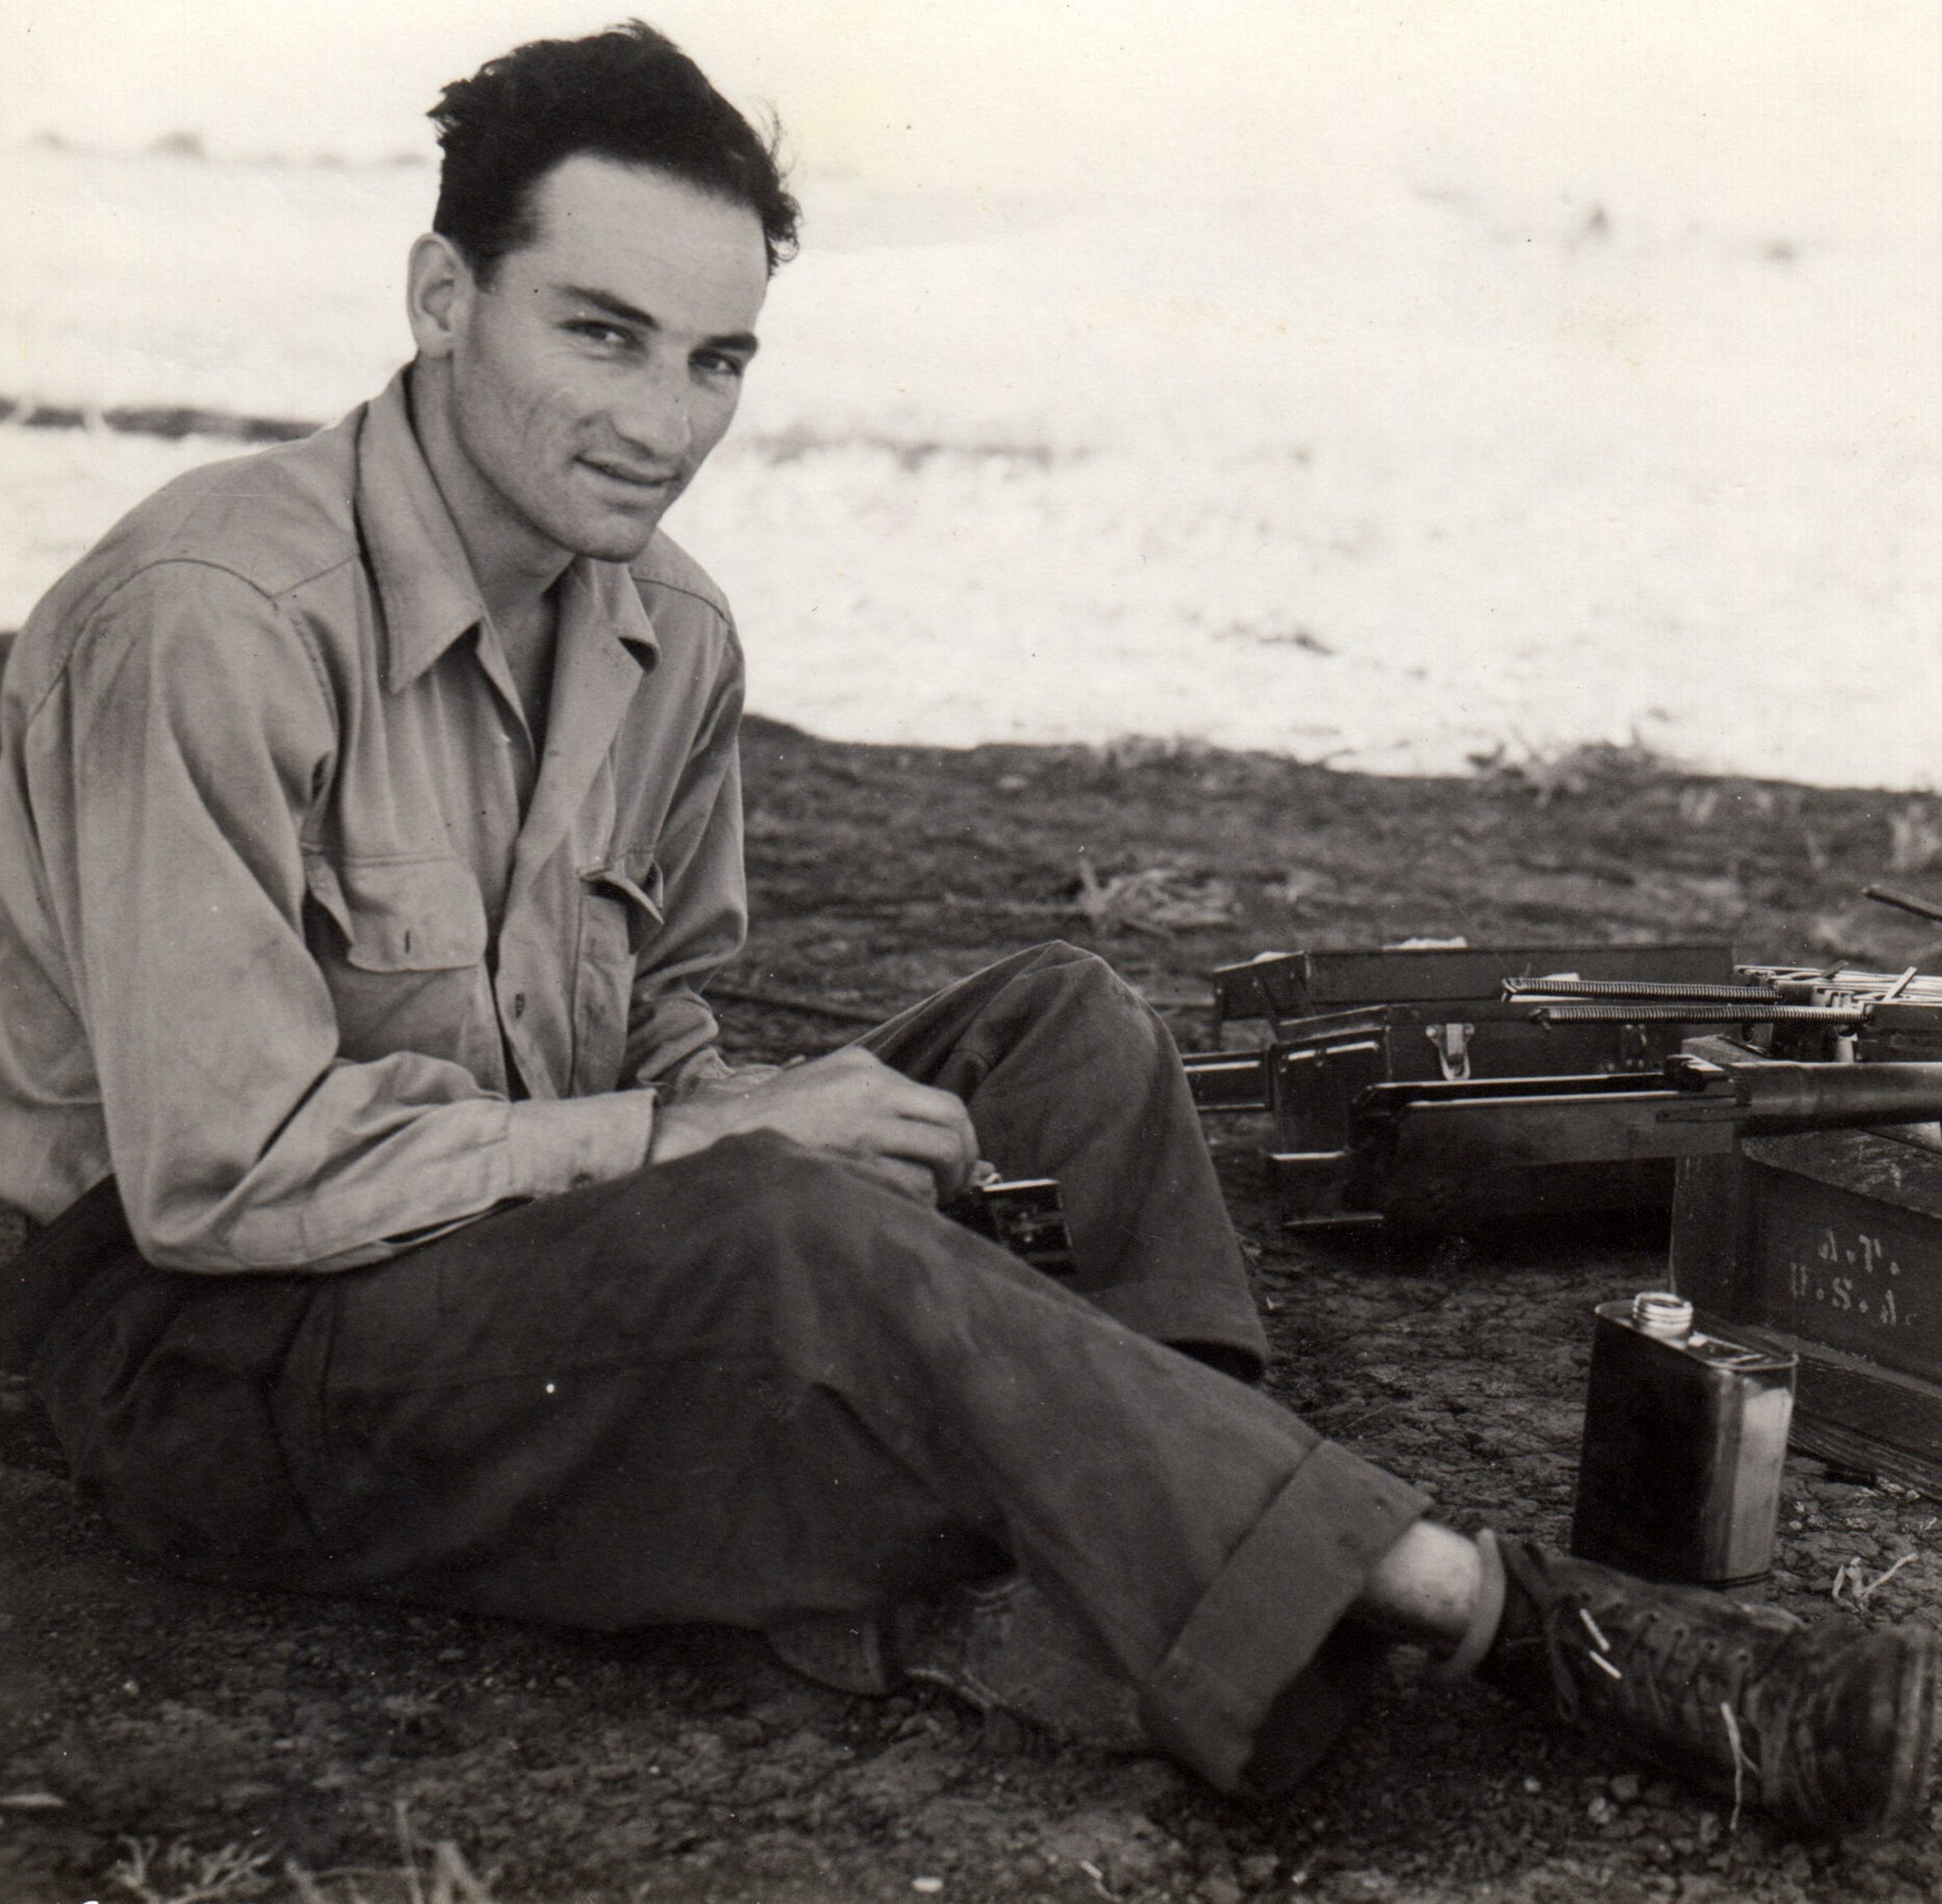 Airman Joe Campos of the U.S. Army/Air Force in Europe during World War II.